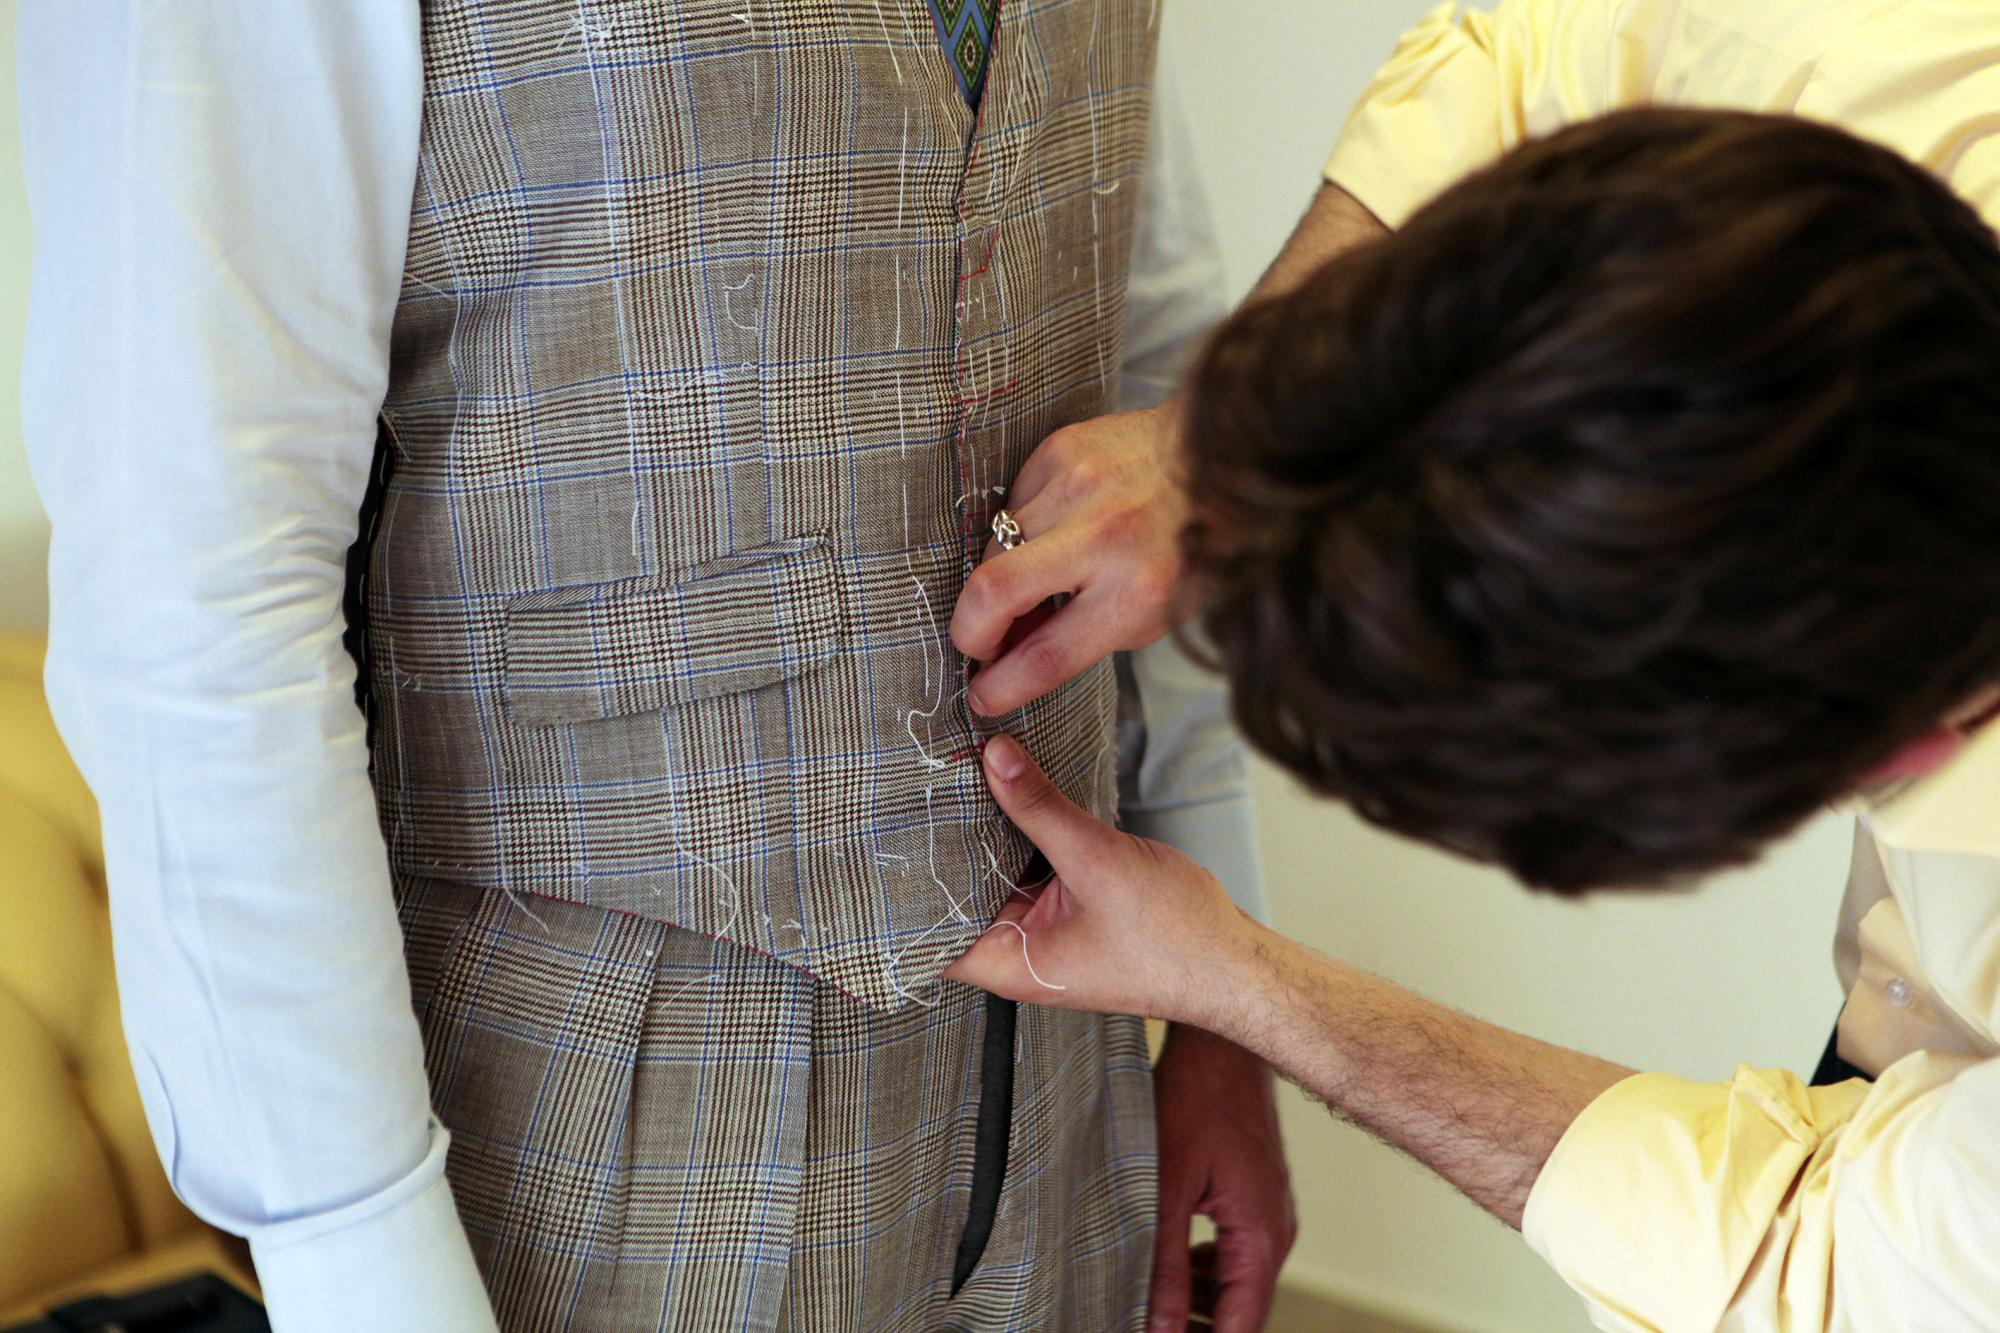 Sartoria Carfora An entrepreneur from Lazio bets on a young and talented tailor